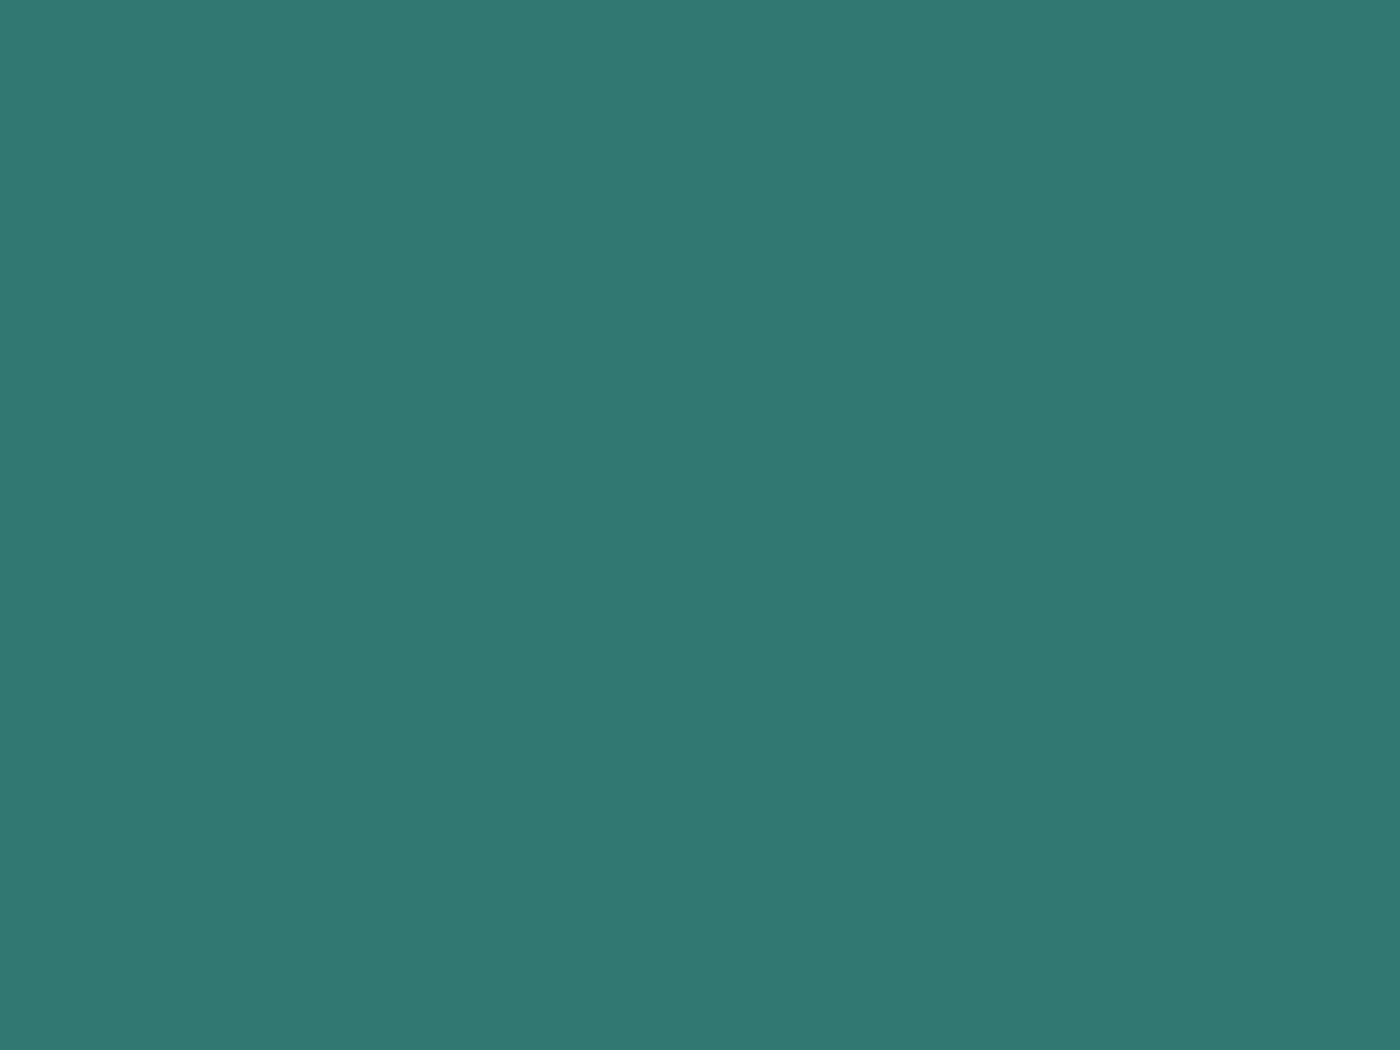 1400x1050 Myrtle Green Solid Color Background